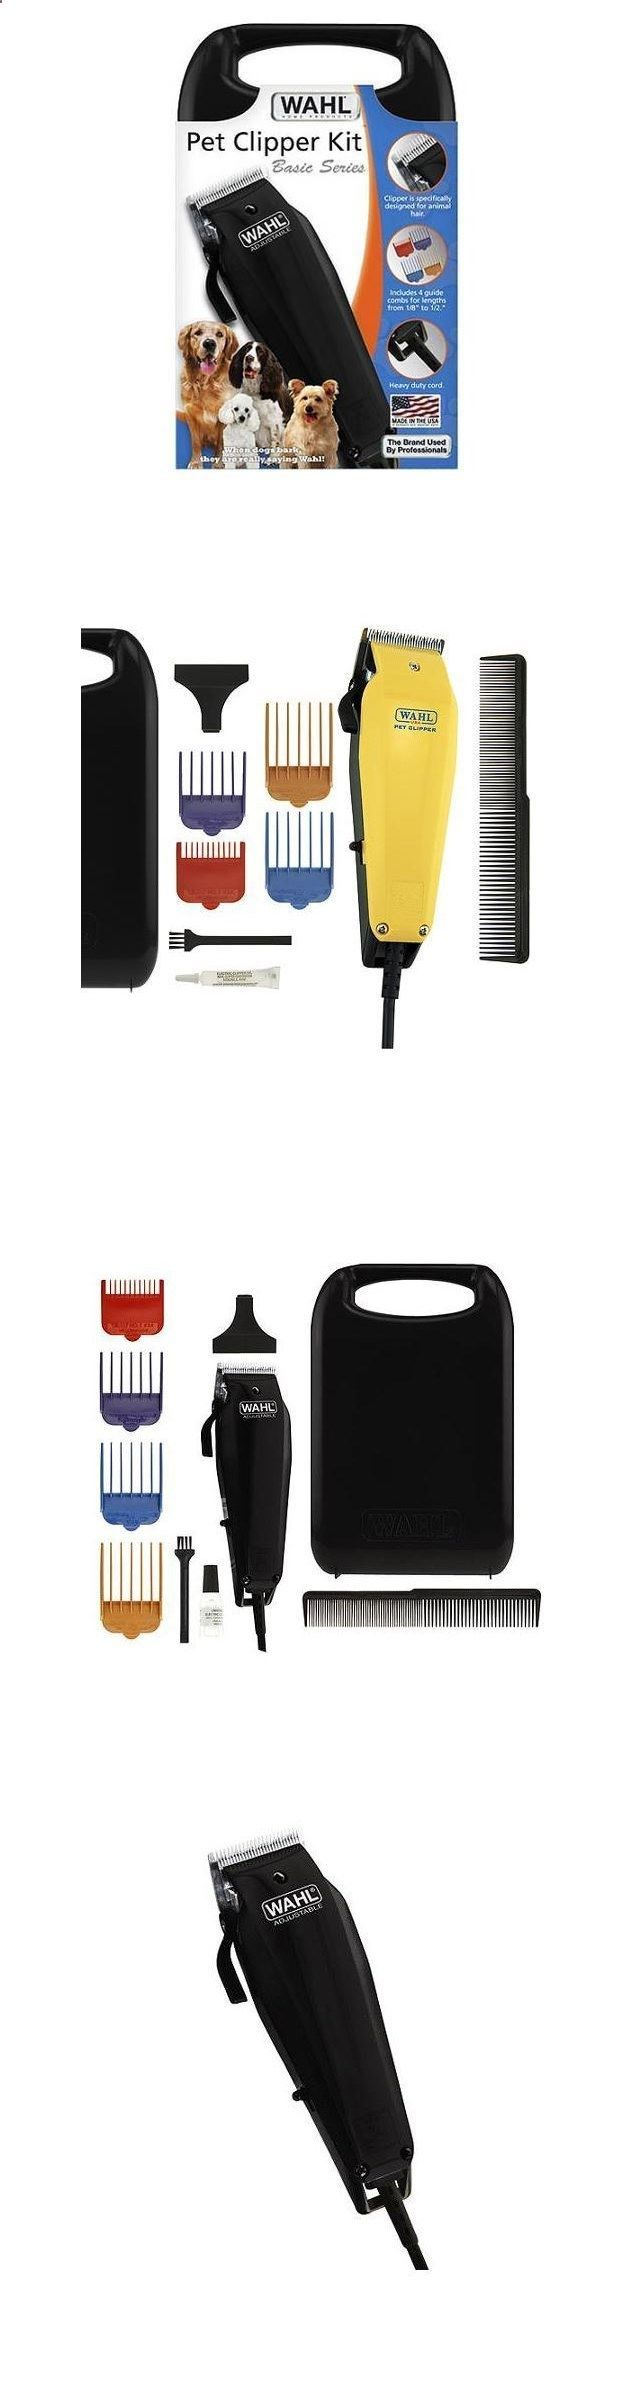 Dog Clippers - Scissors and Fur Clippers 46304: Wahl Dog Clipper Kit Pet Grooming Electric Hair Trimmer Animal Cat Fur Shaver -> BUY IT NOW ONLY: $44.99 on eBay!